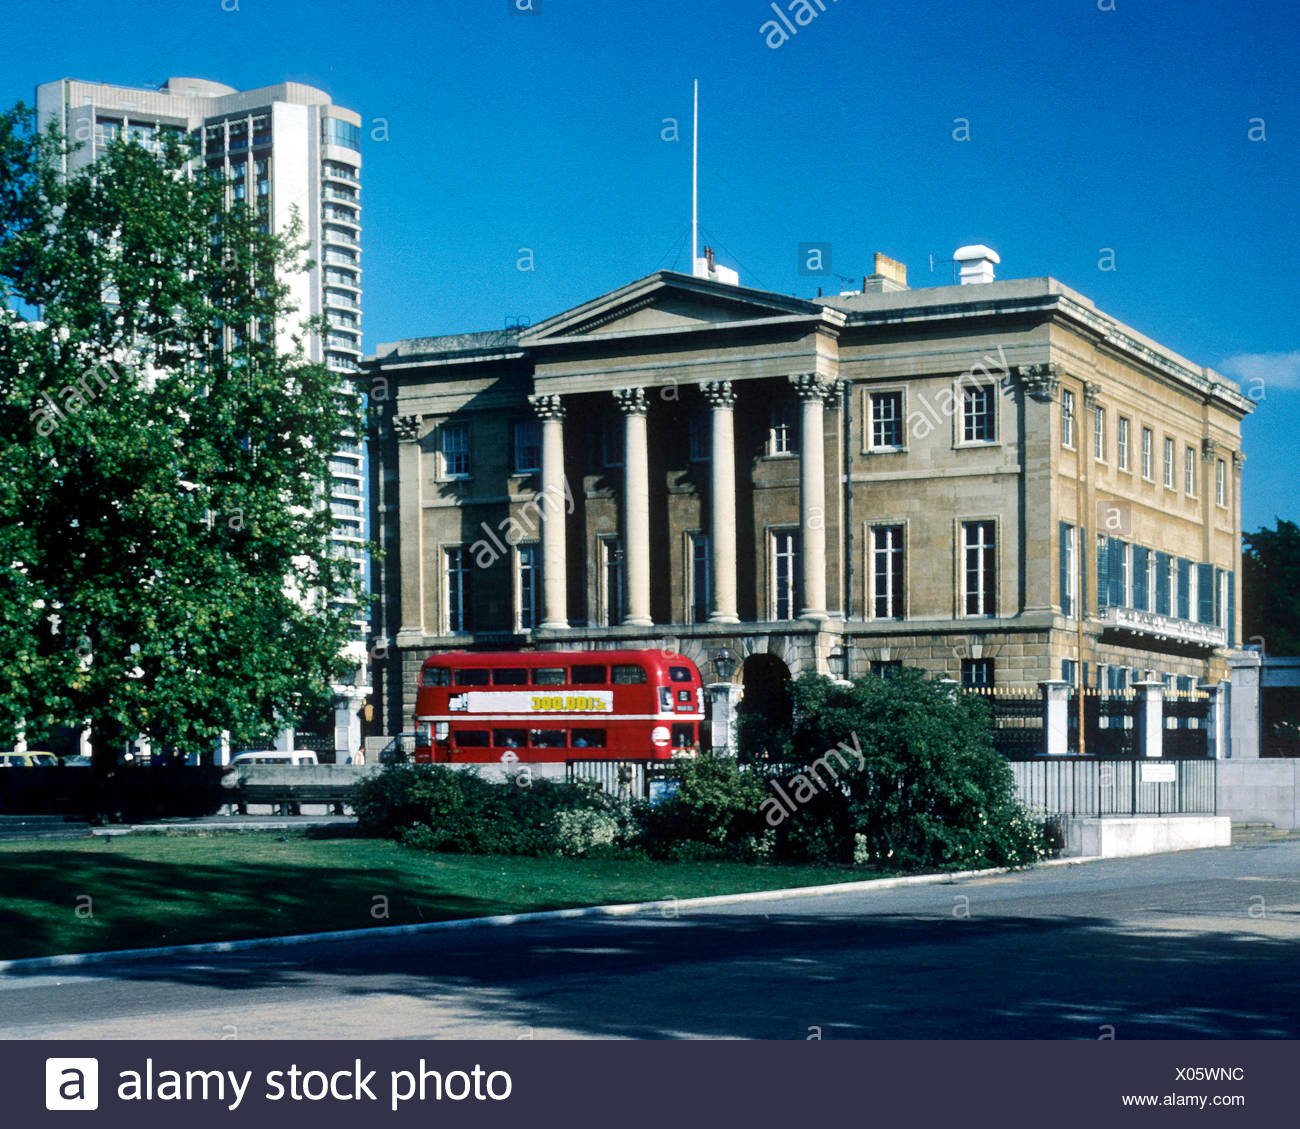 Apsley House, No. 1, Piccadilly, Hyde Park Corner, London, England UK, home of the 1st Duke of Wellington, red bus busses - Stock Image